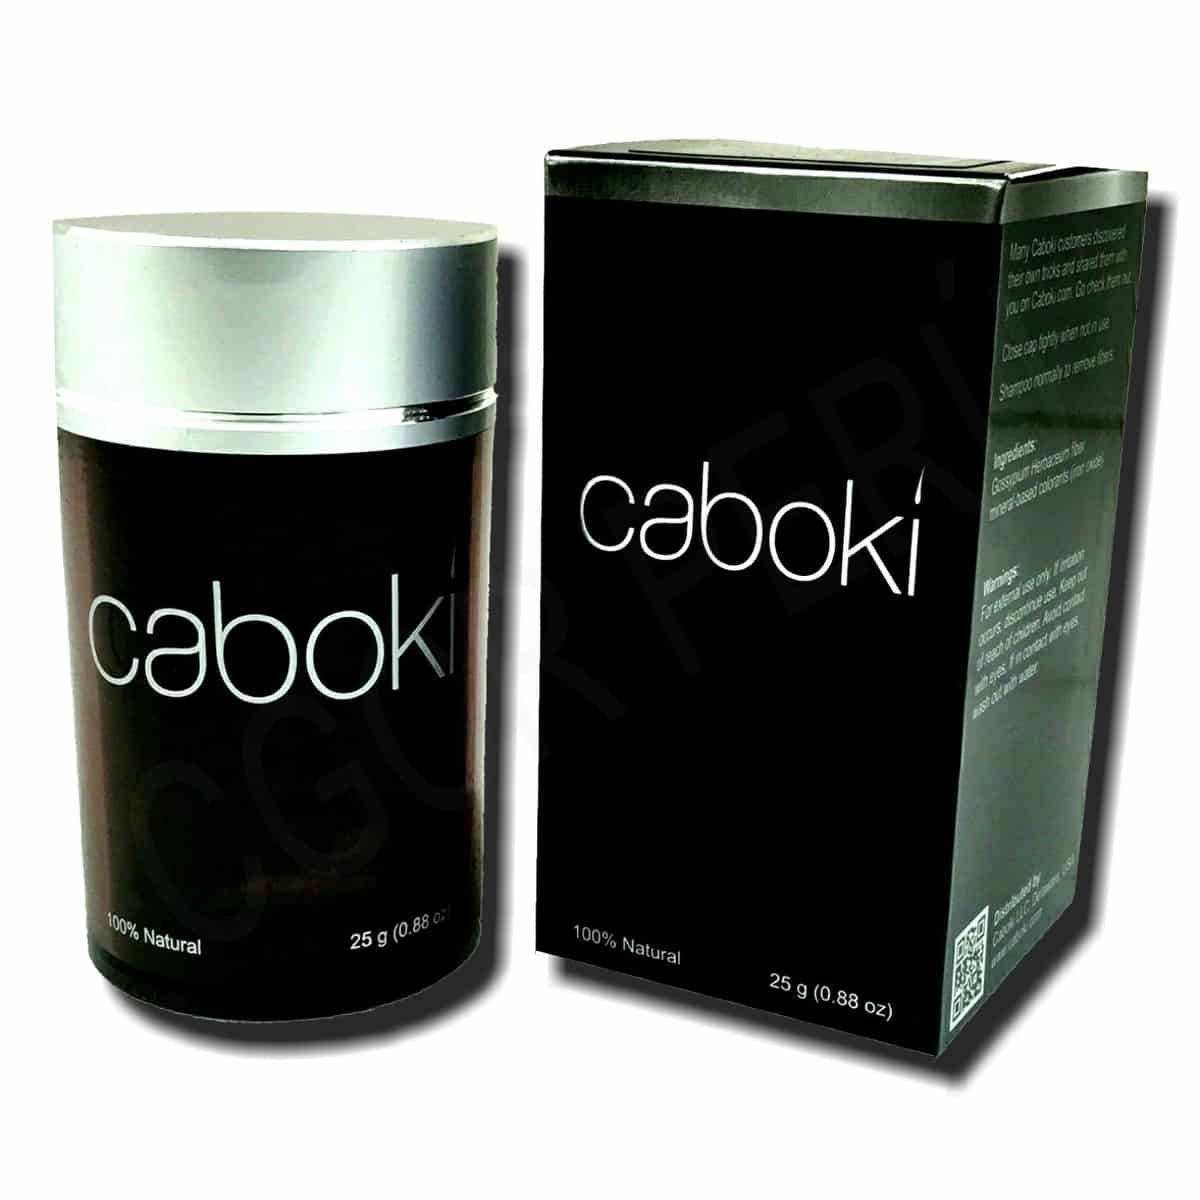 Do Caboki Ingredients Cause Side Effects